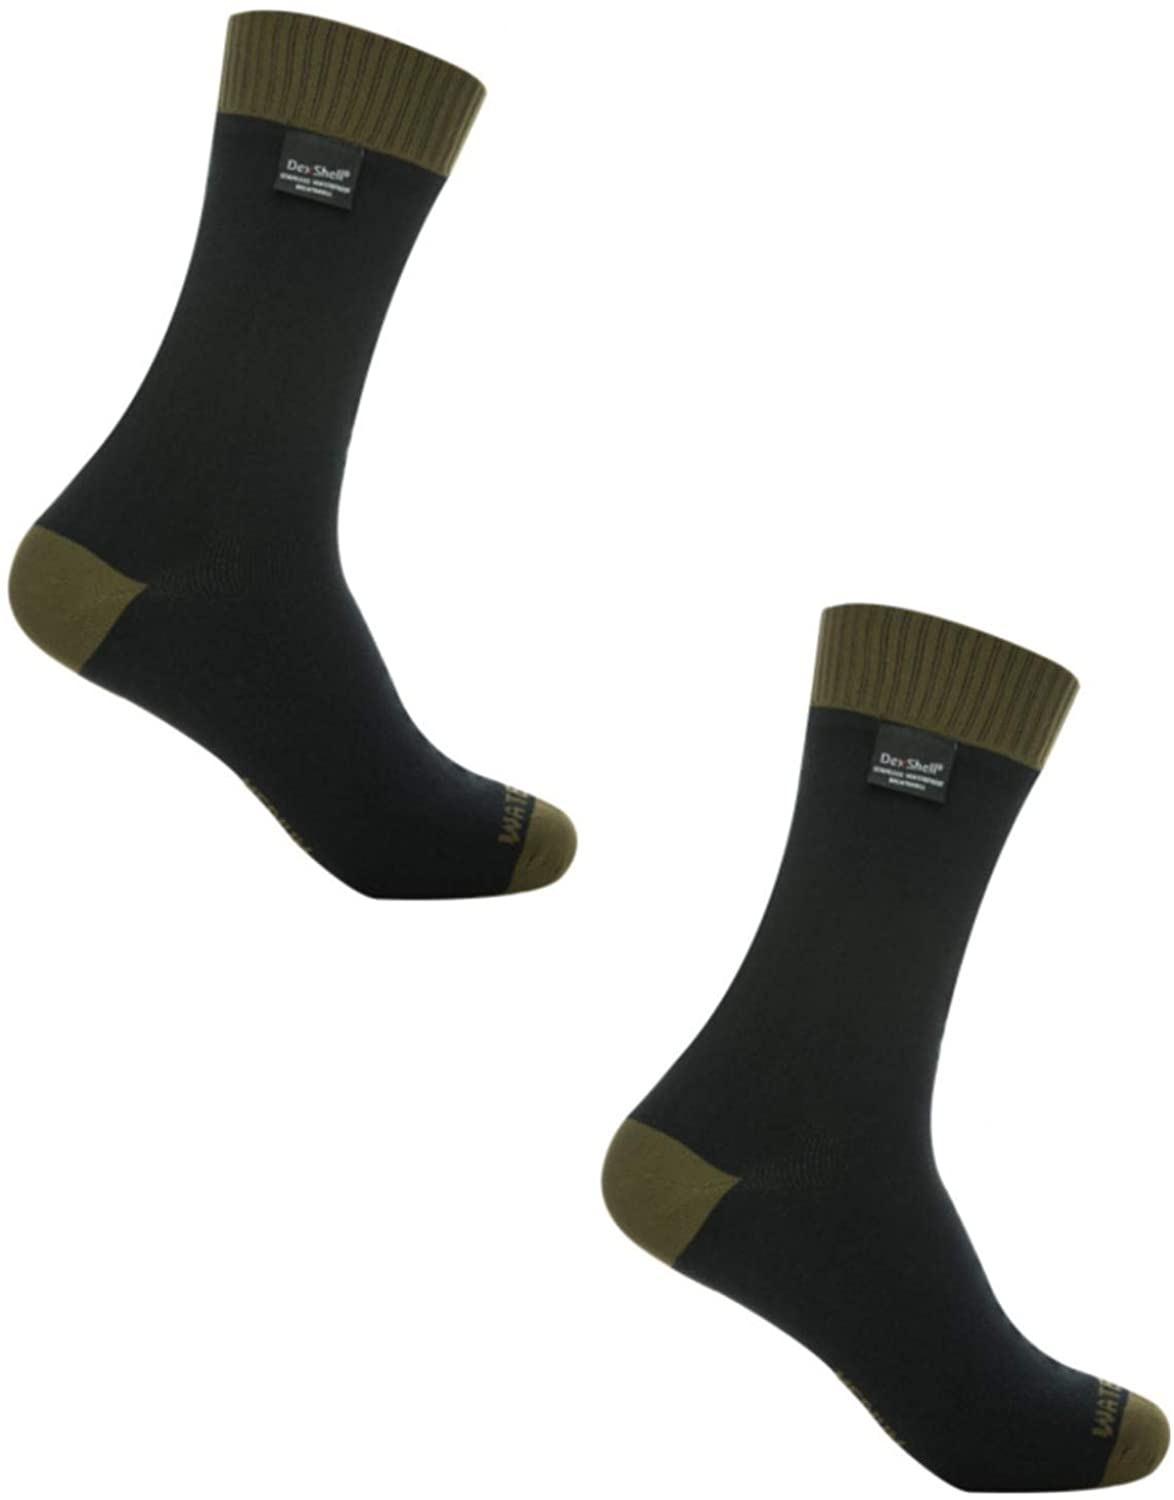 Dexshell Thermlite Sock - Olive - XL 2 Pack